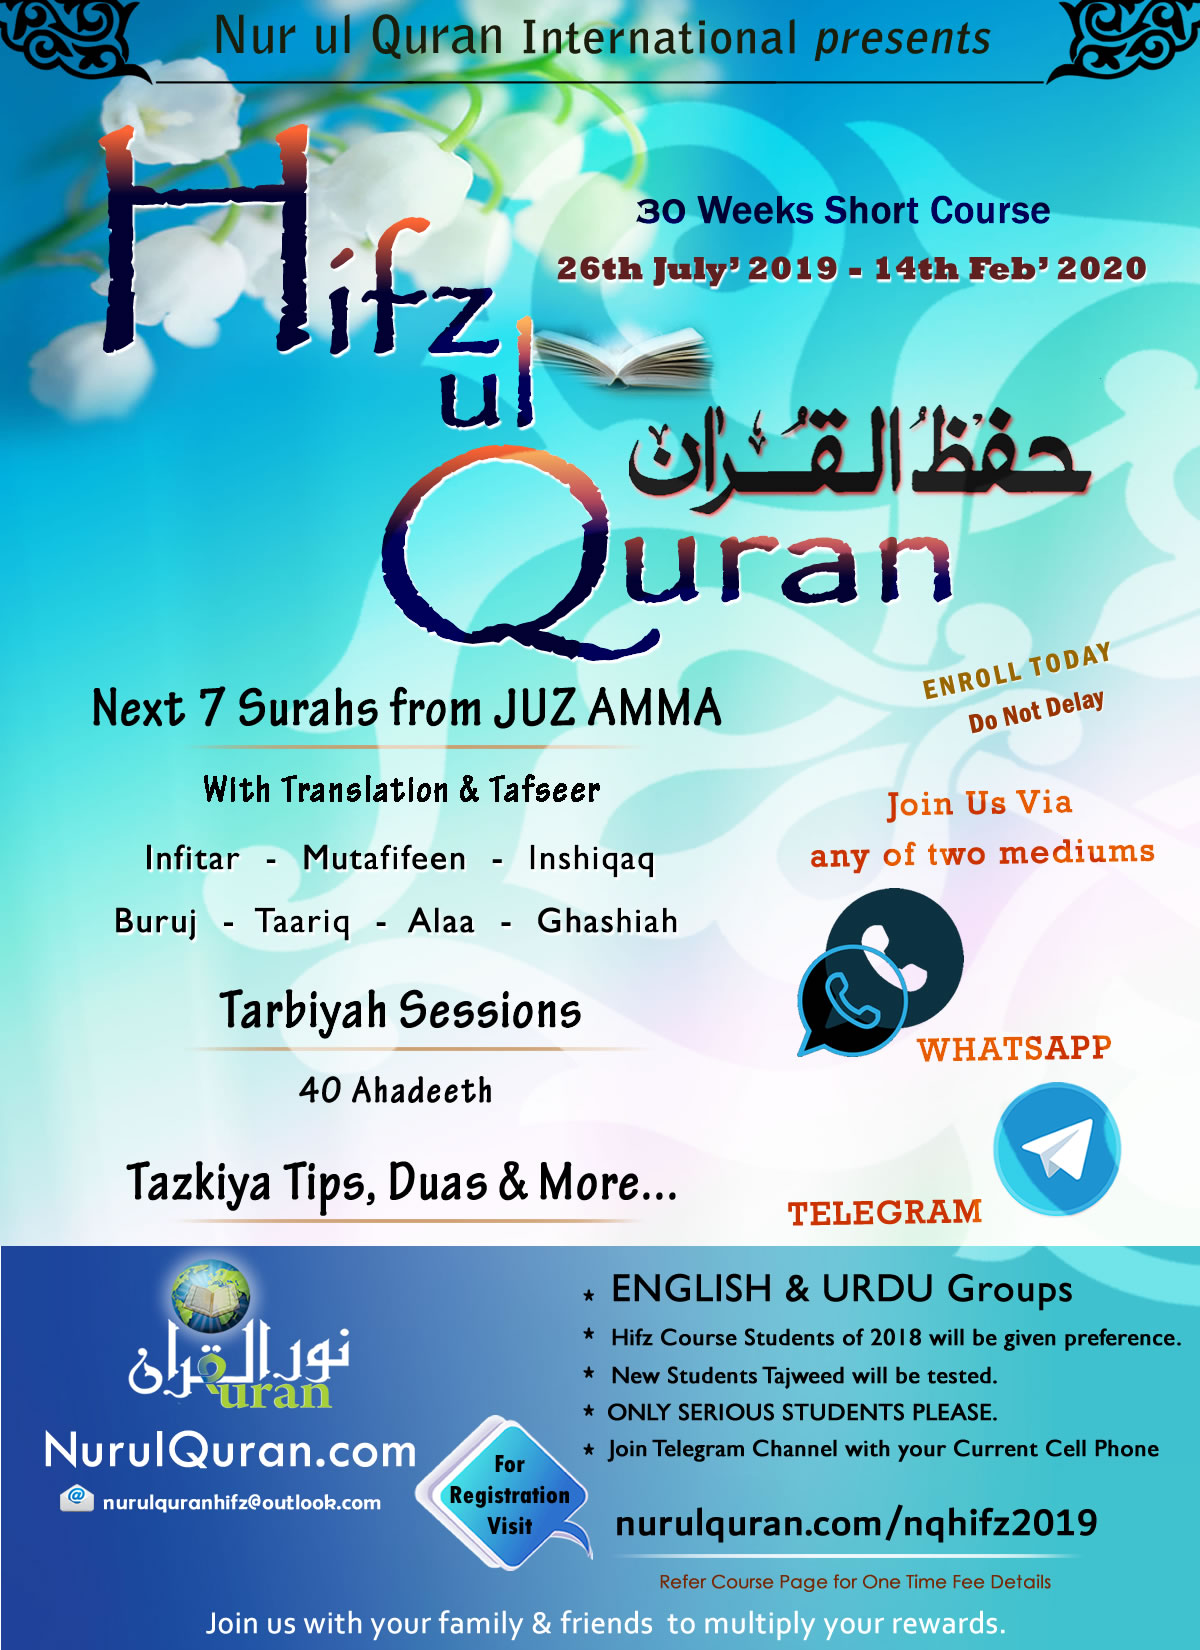 NurulQuran Hifz Course 2019 [ Urdu & English Groups @ Whats APP